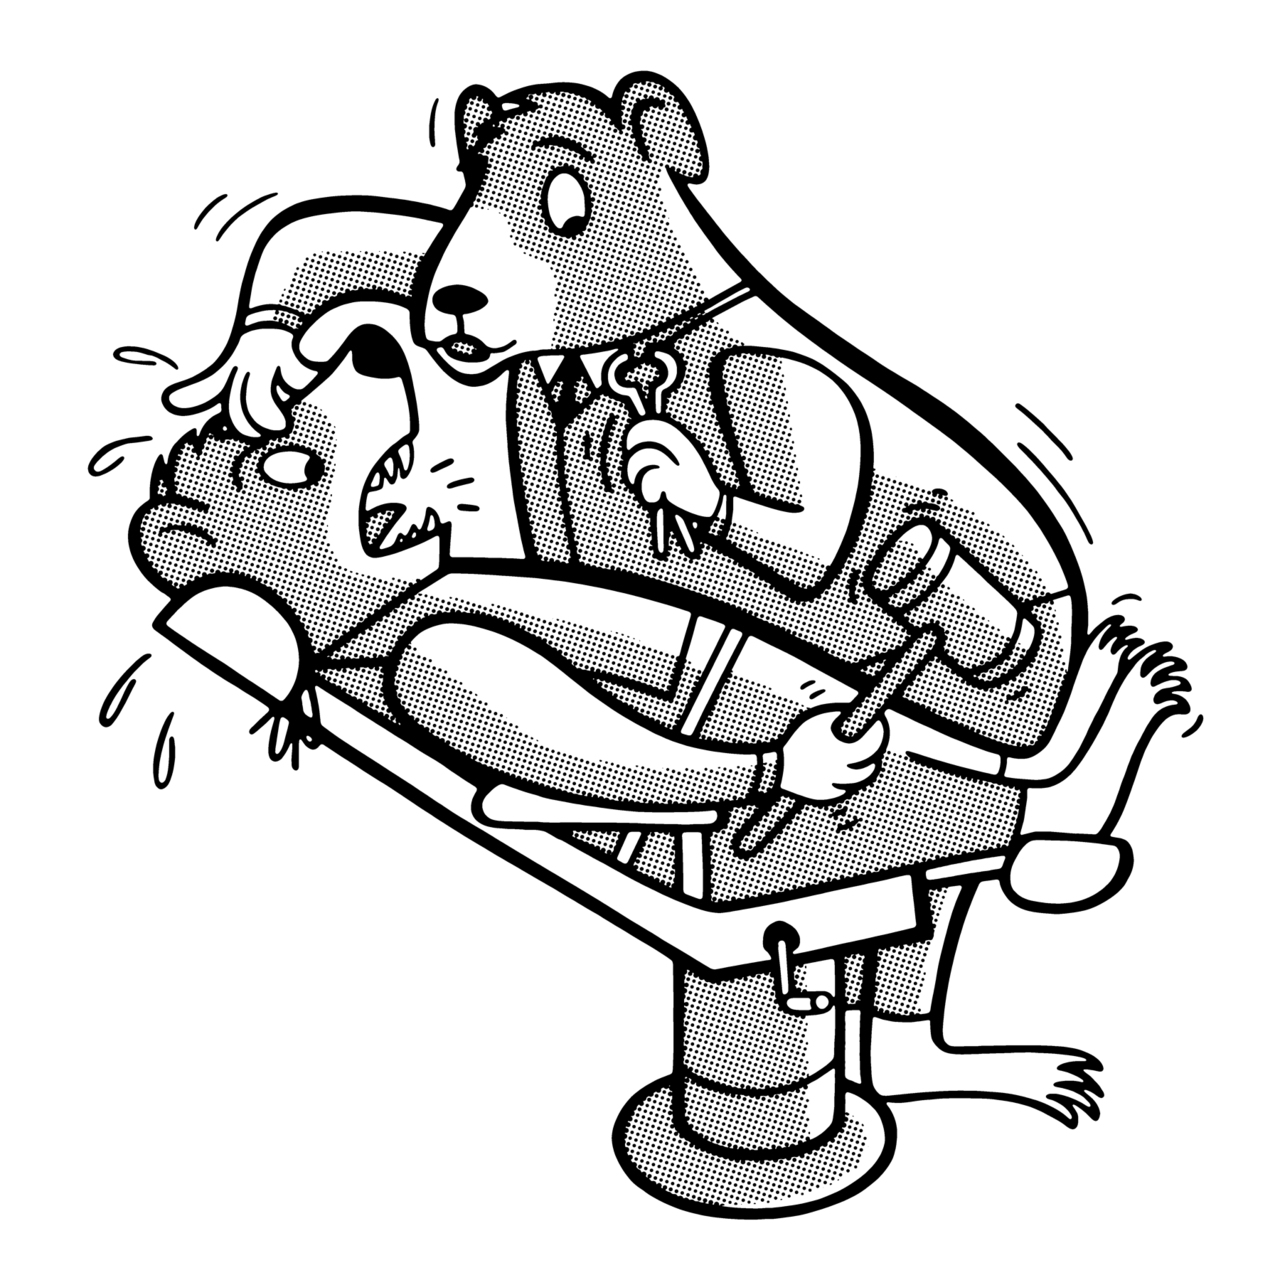 500th Image! This dentist bear is my 500th image drawn at  CSA DESIGN ! You can purchase him  at csaimages.com in about a month. Be sure to check him out!   * All Images Copyright CSA Images, CSA Design, & PoPInk 2010